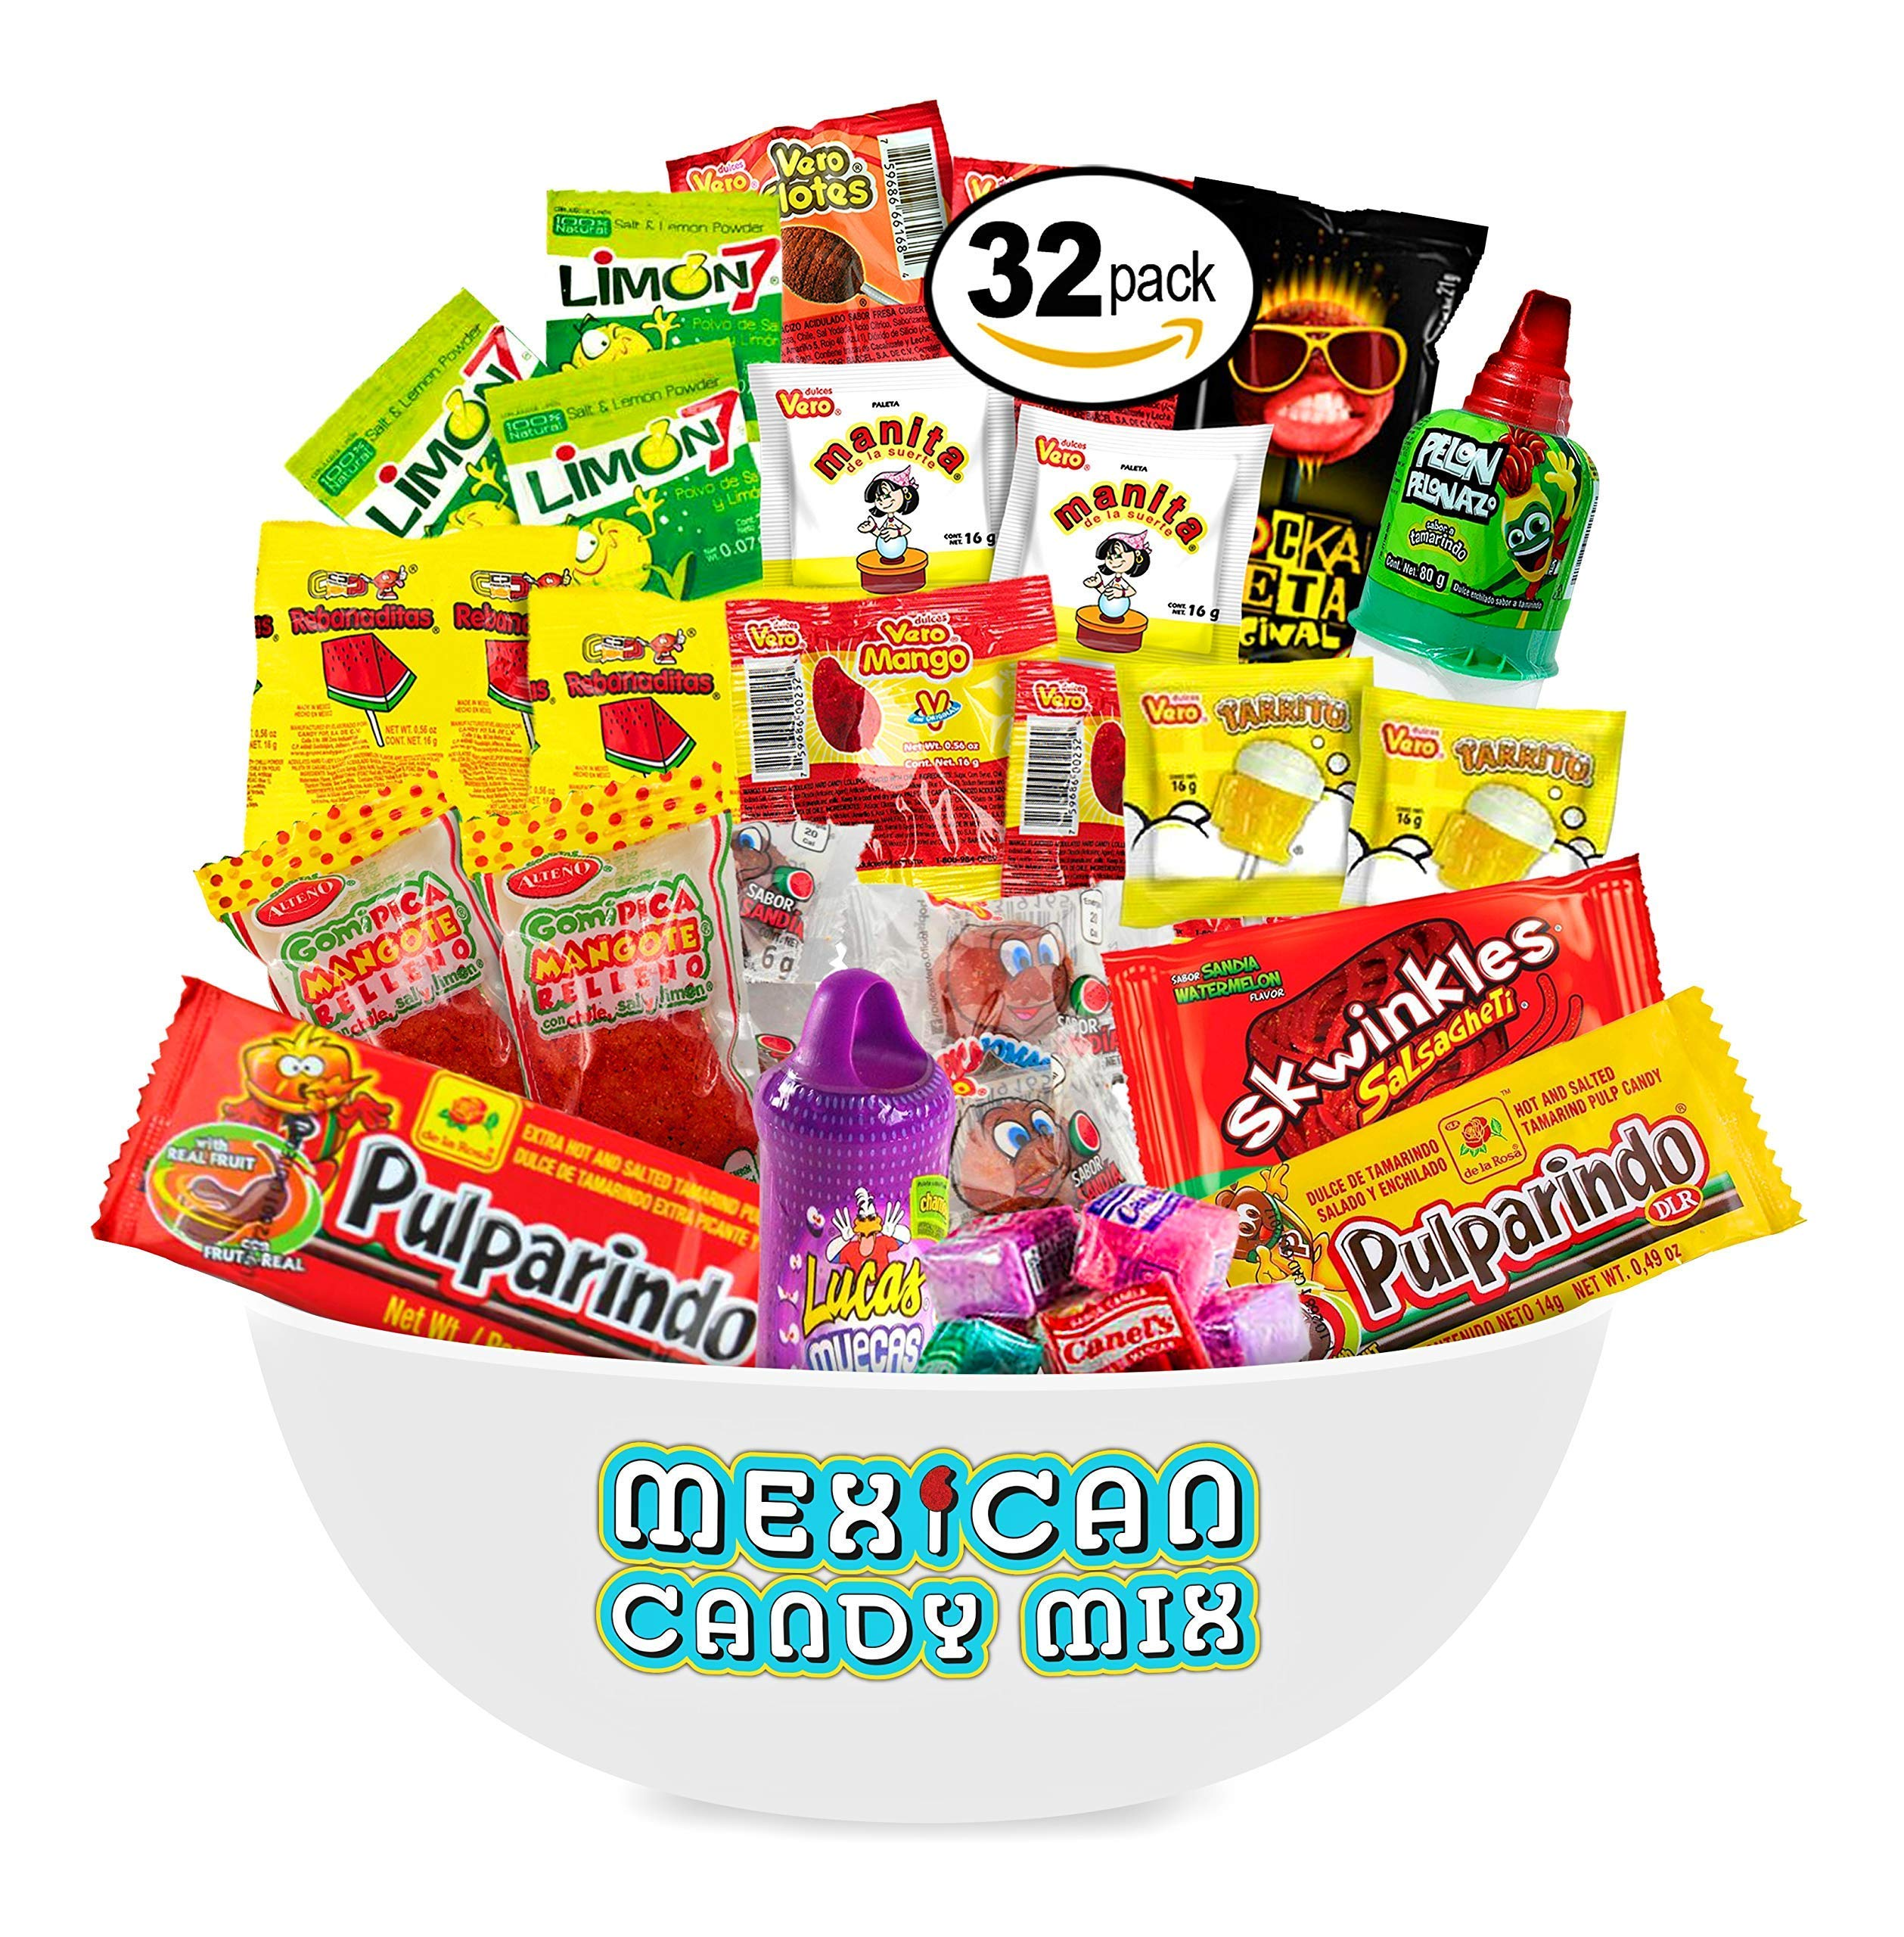 Mexican Candy Assortment Snacks (32 Count), Variety Of Spicy, Sweet, Sour Bulk Candies Dulces Mexicanos, Includes Lucas, Pelon, Vero Lollipops, Pulparindo Makes A Great Gift By MTC. by MTC